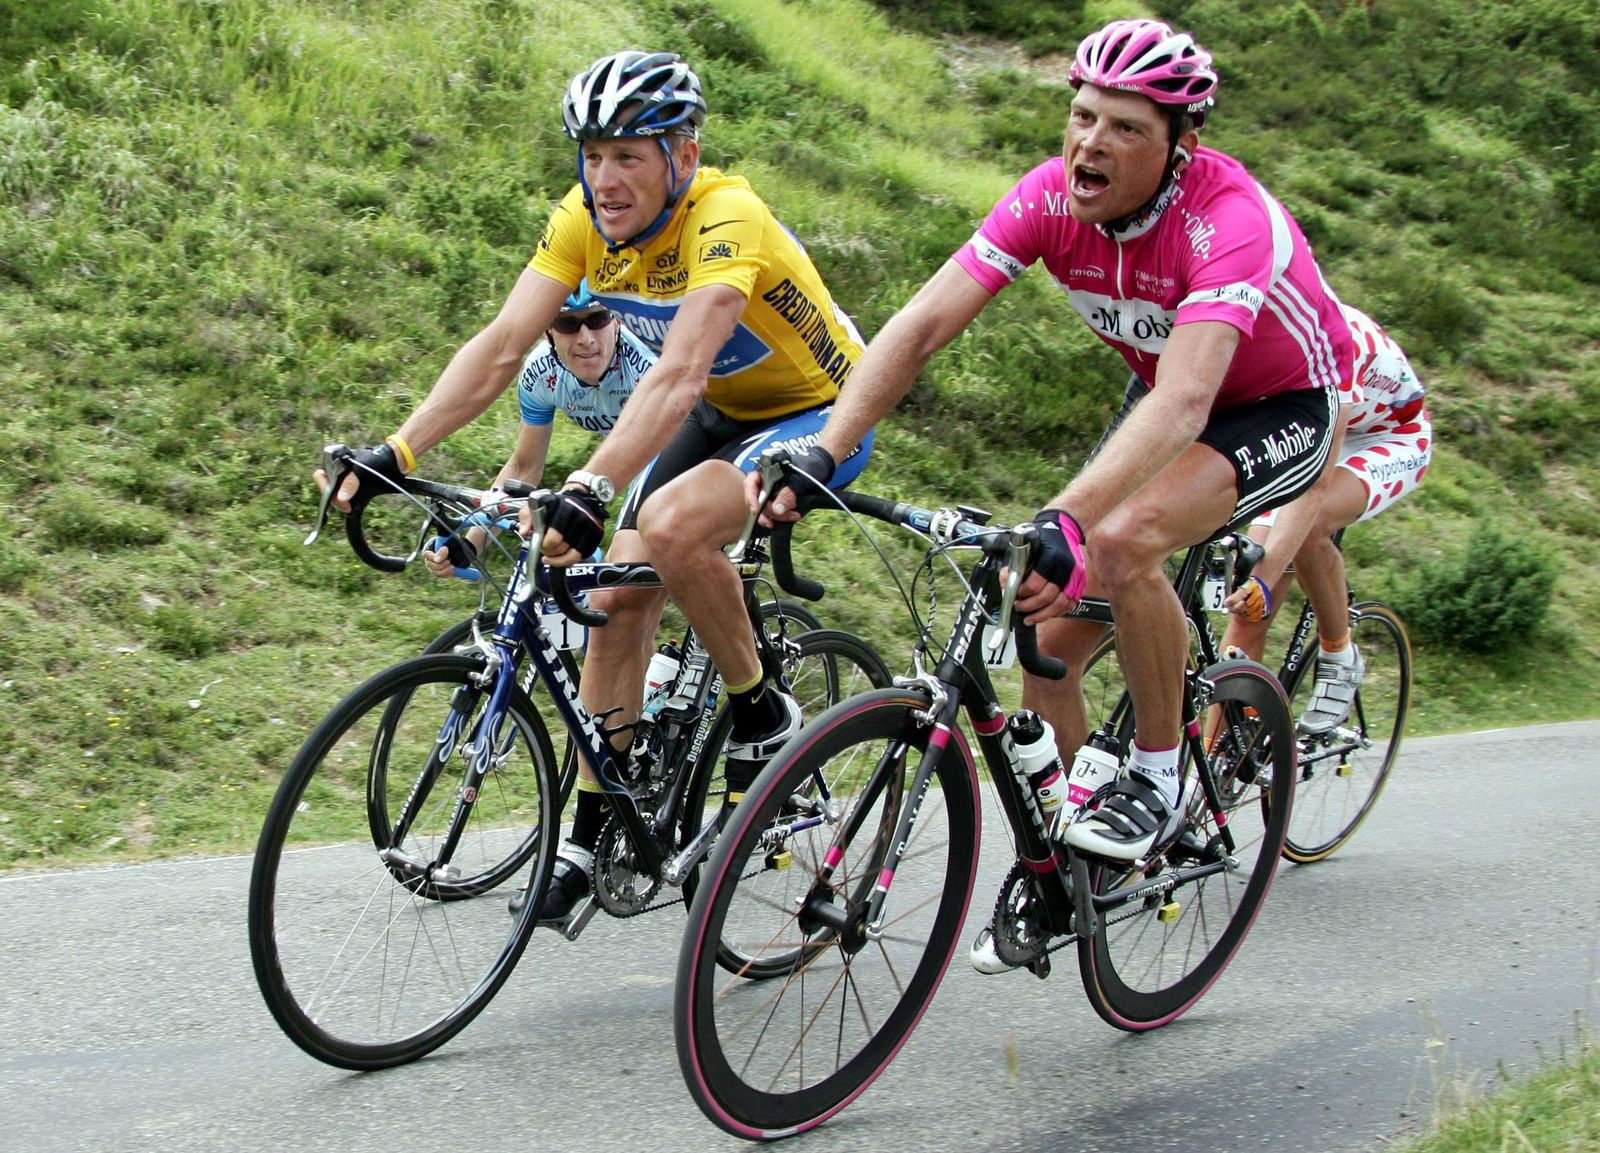 CYCLING-ARMSTRONG/DOPING